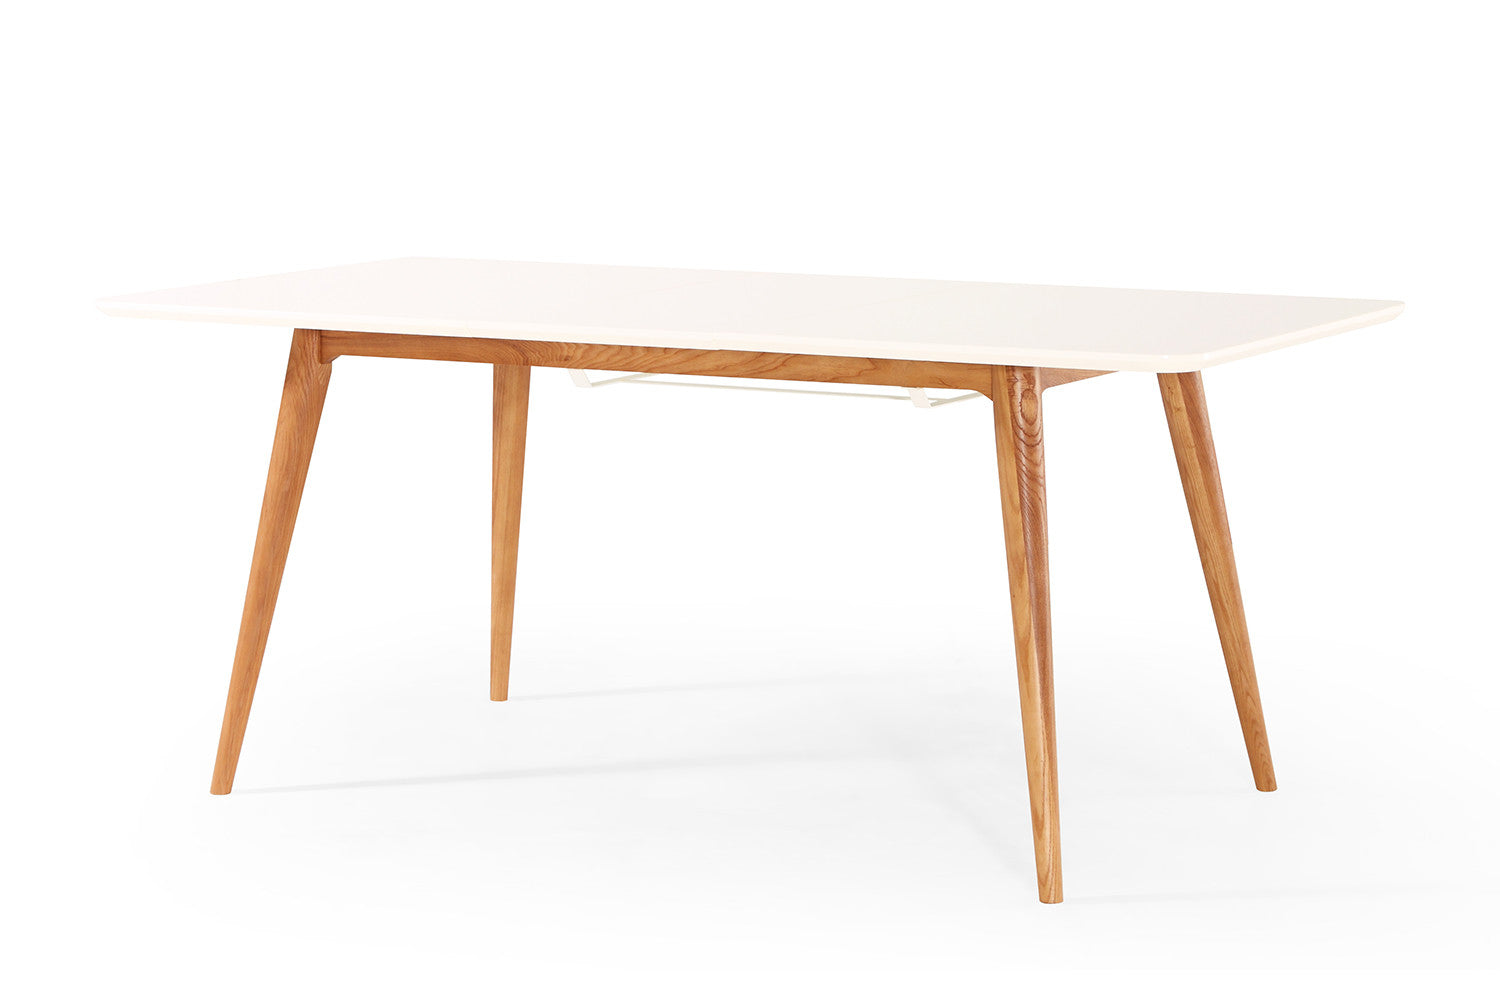 Table salle a manger scandinave extensible for Table salle a manger gain de place